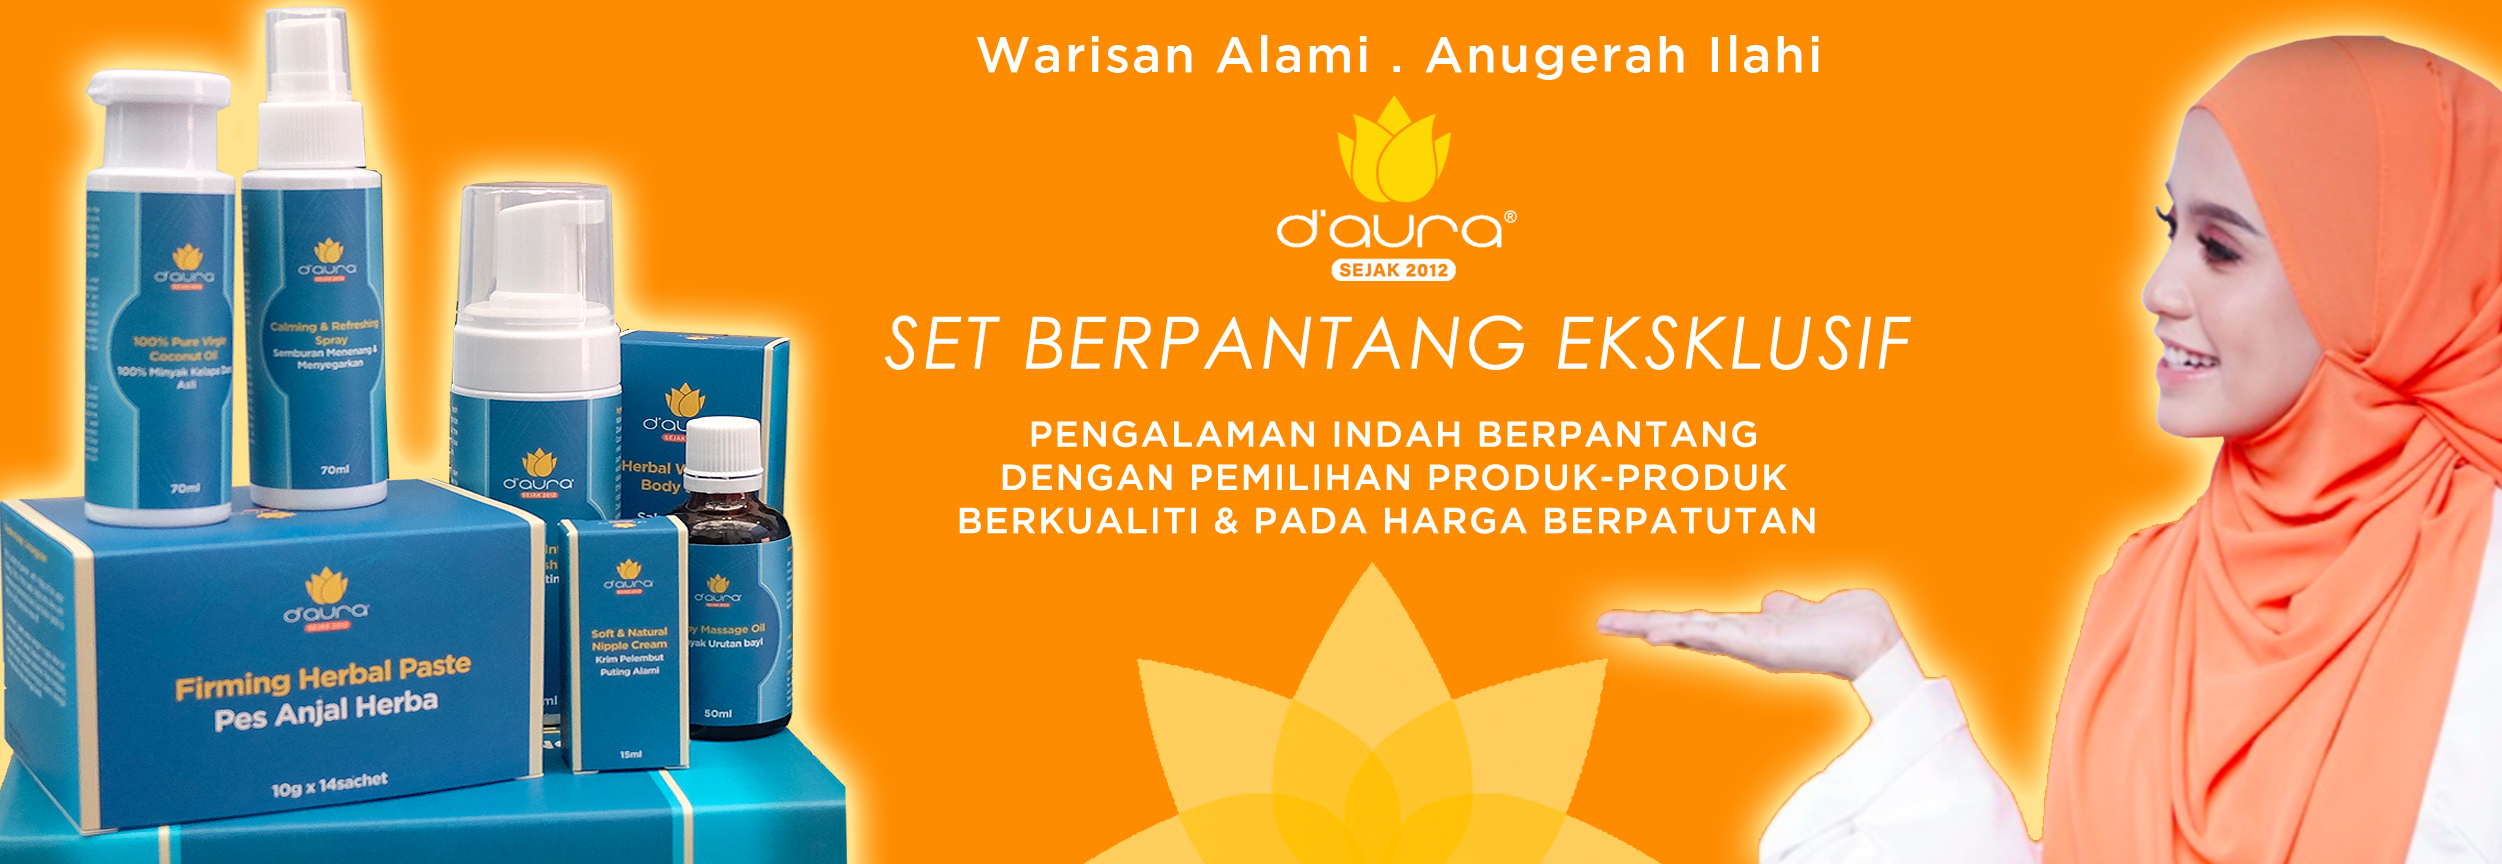 BANNER WEBSITE SET BERPANTANG